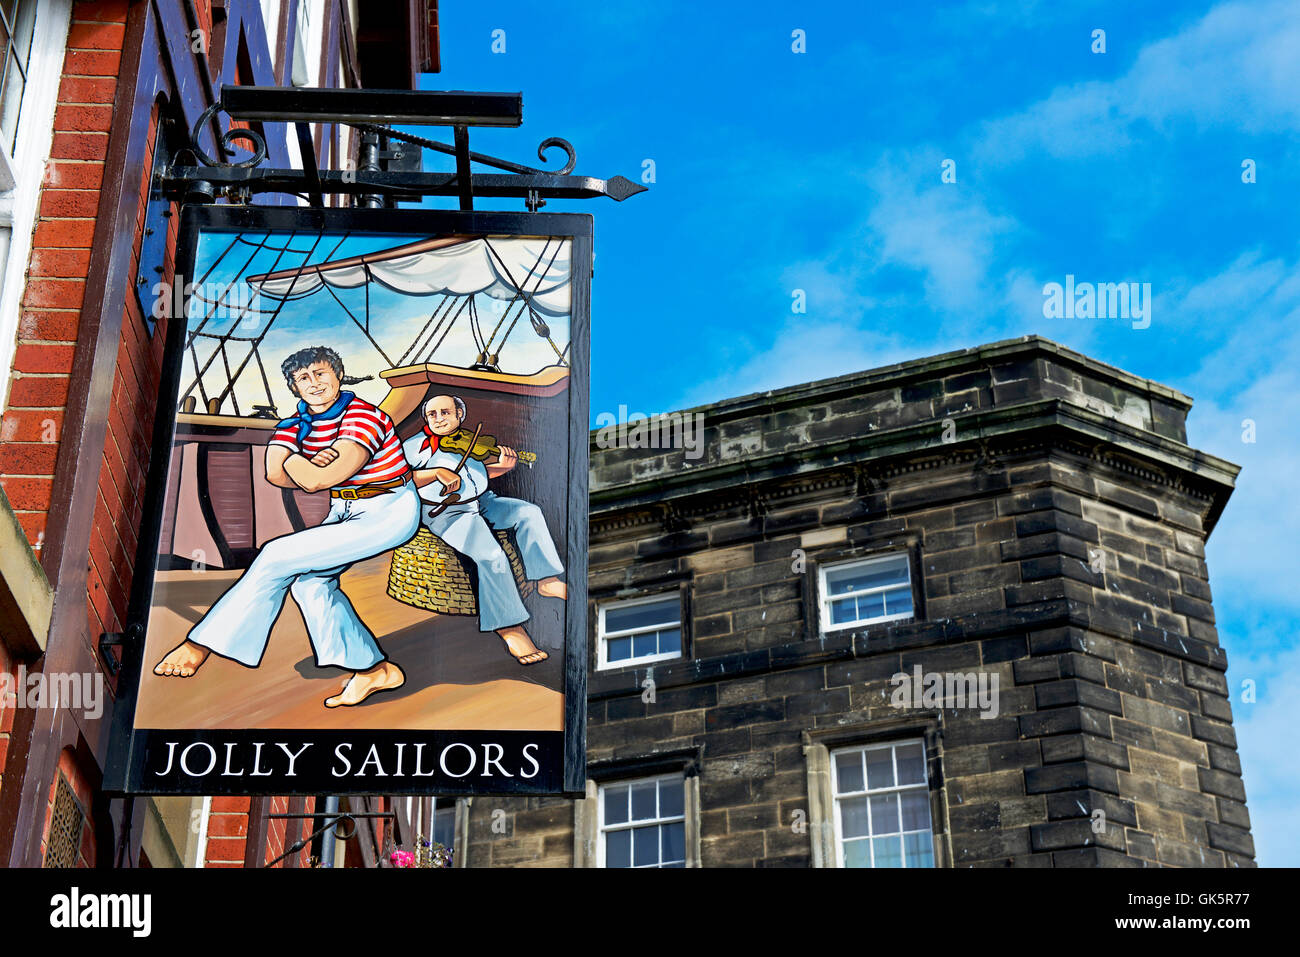 Sign for the Jolly Sailors pub, St Ann's Staith, Whitby, North Yorkshire, England UK - Stock Image